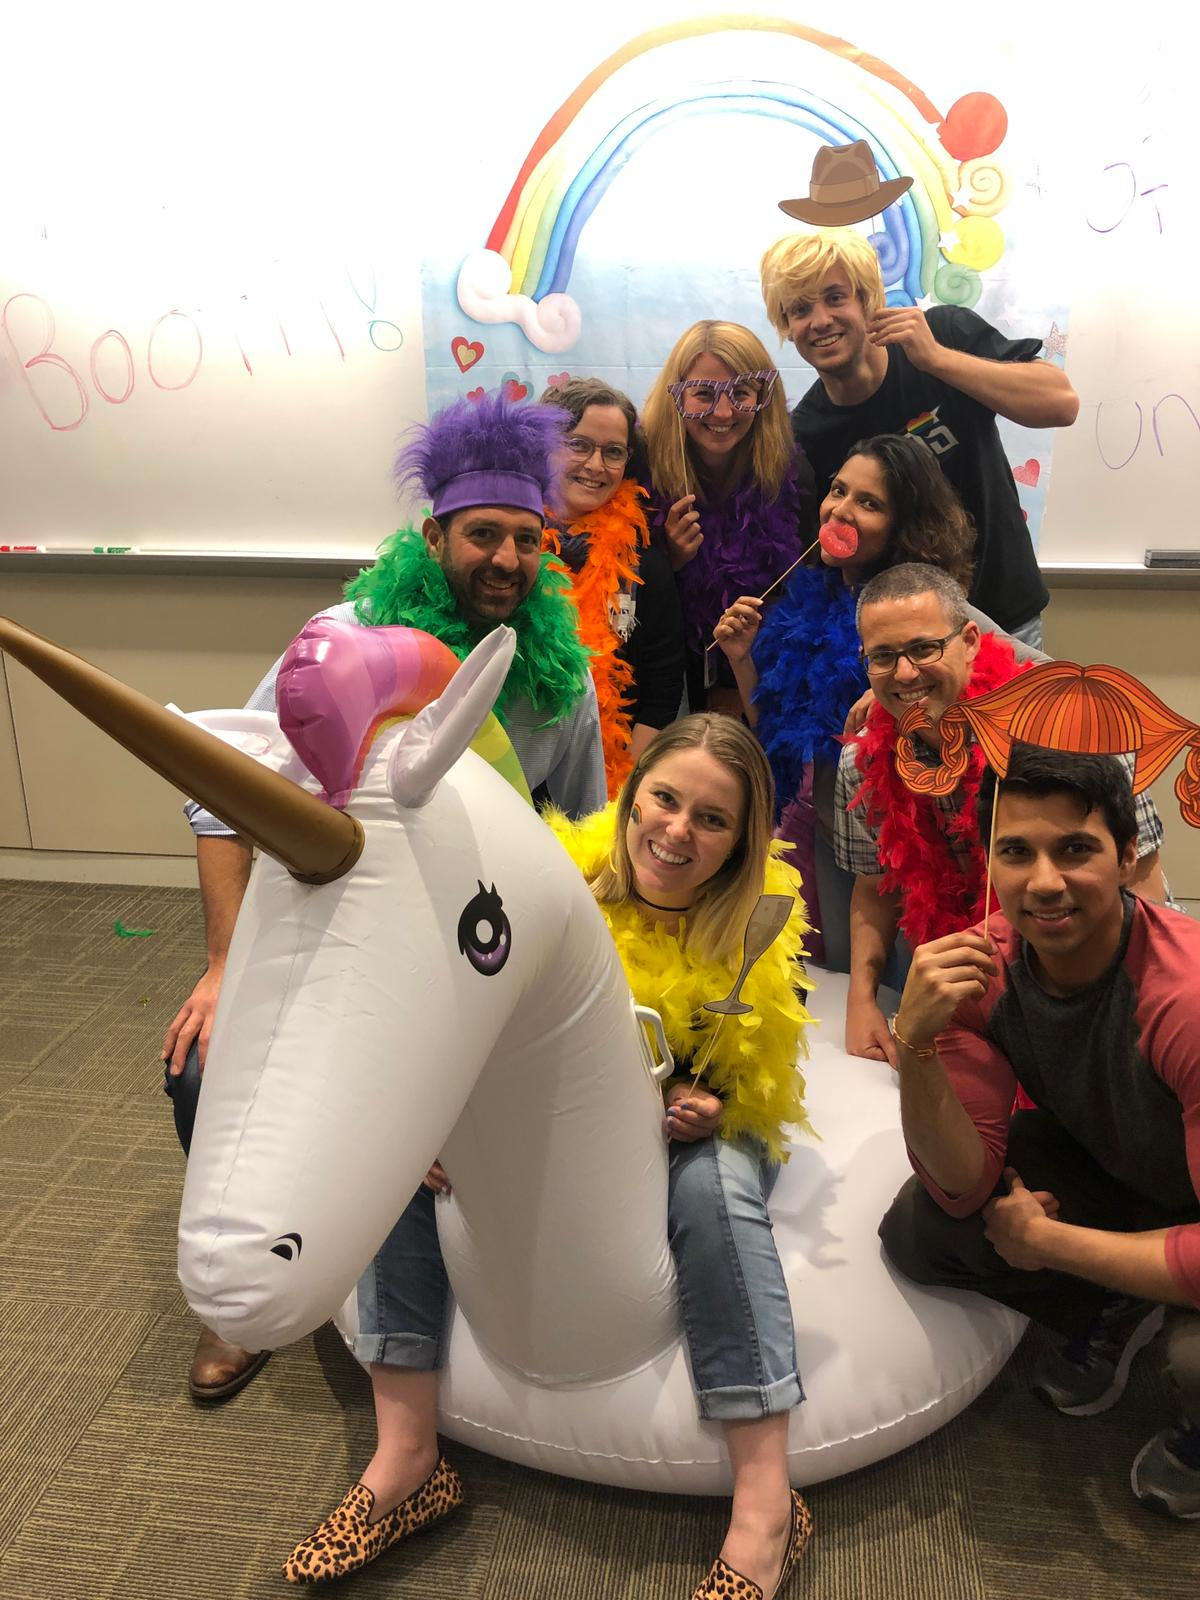 Lab photo with our honorary member Jamie the unicorn at the LGBTQ+ Happy Hour.